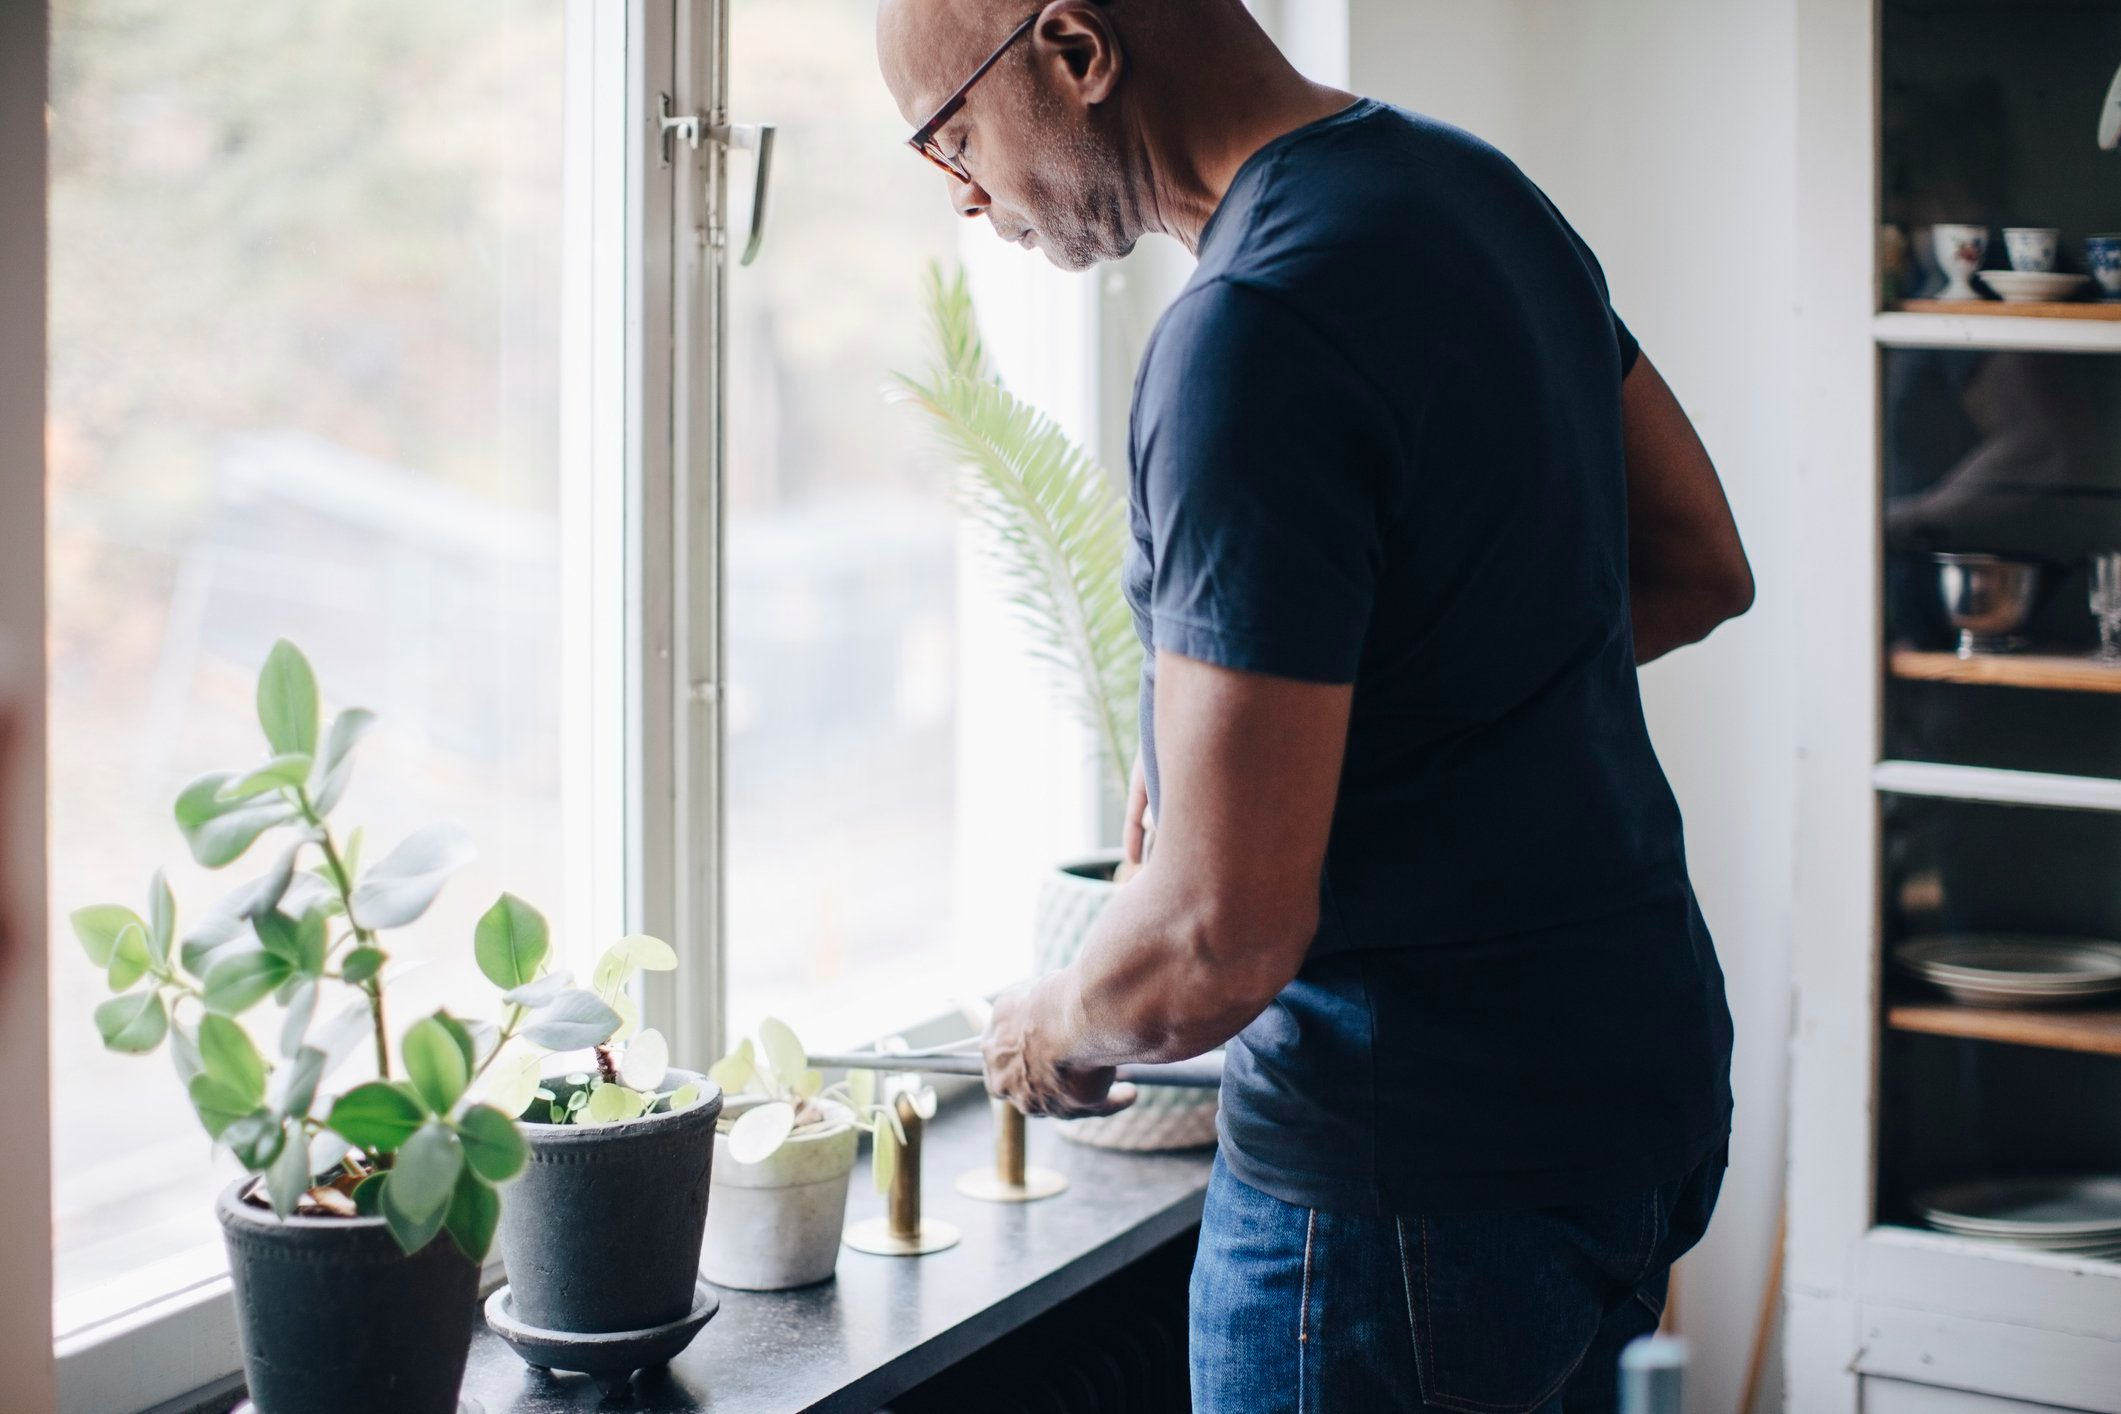 man watering plants in house